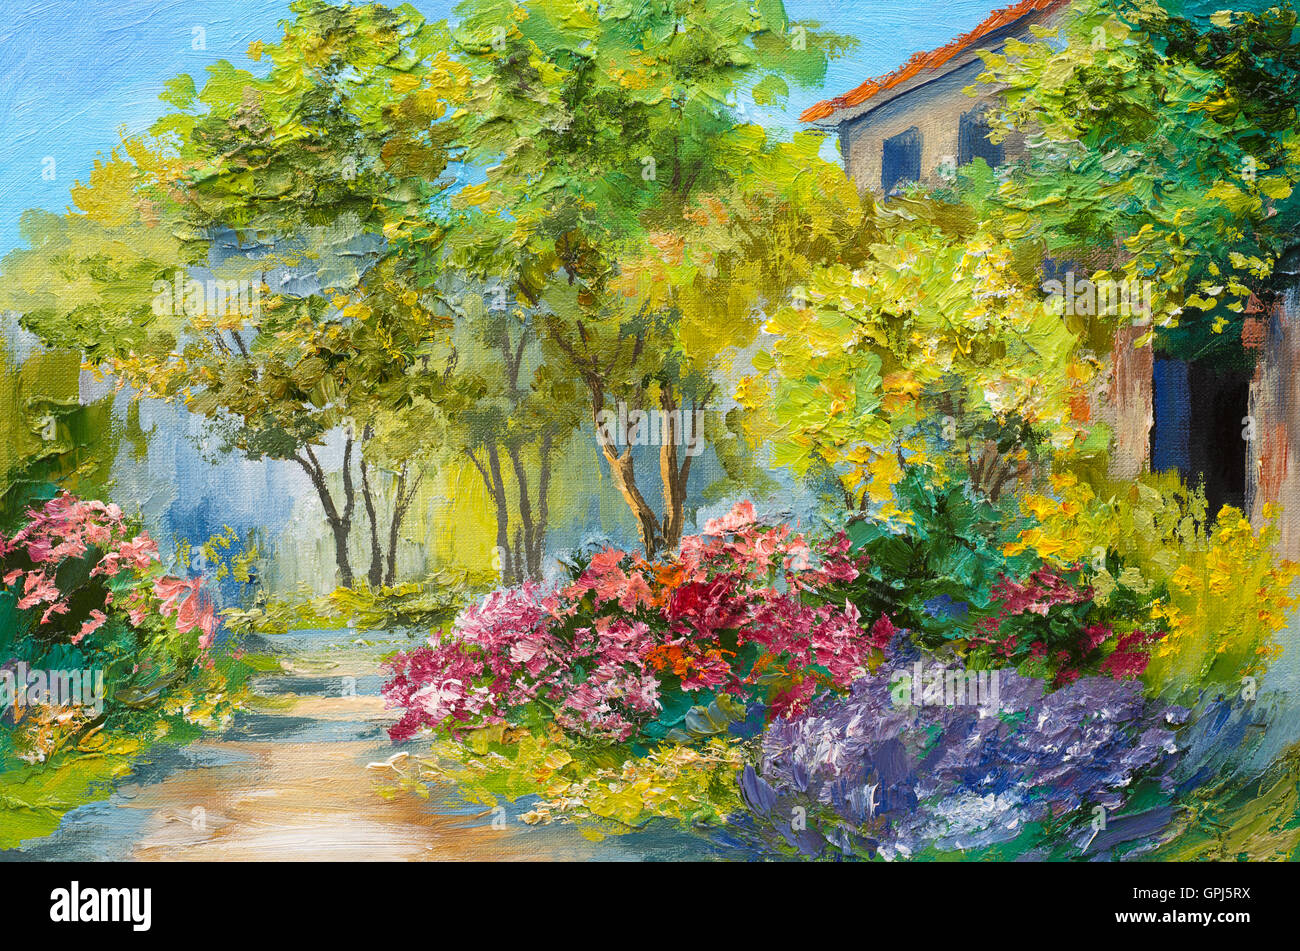 Oil Painting House In The Summer Forest Stock Photo Royalty Free Image 117184366 Alamy